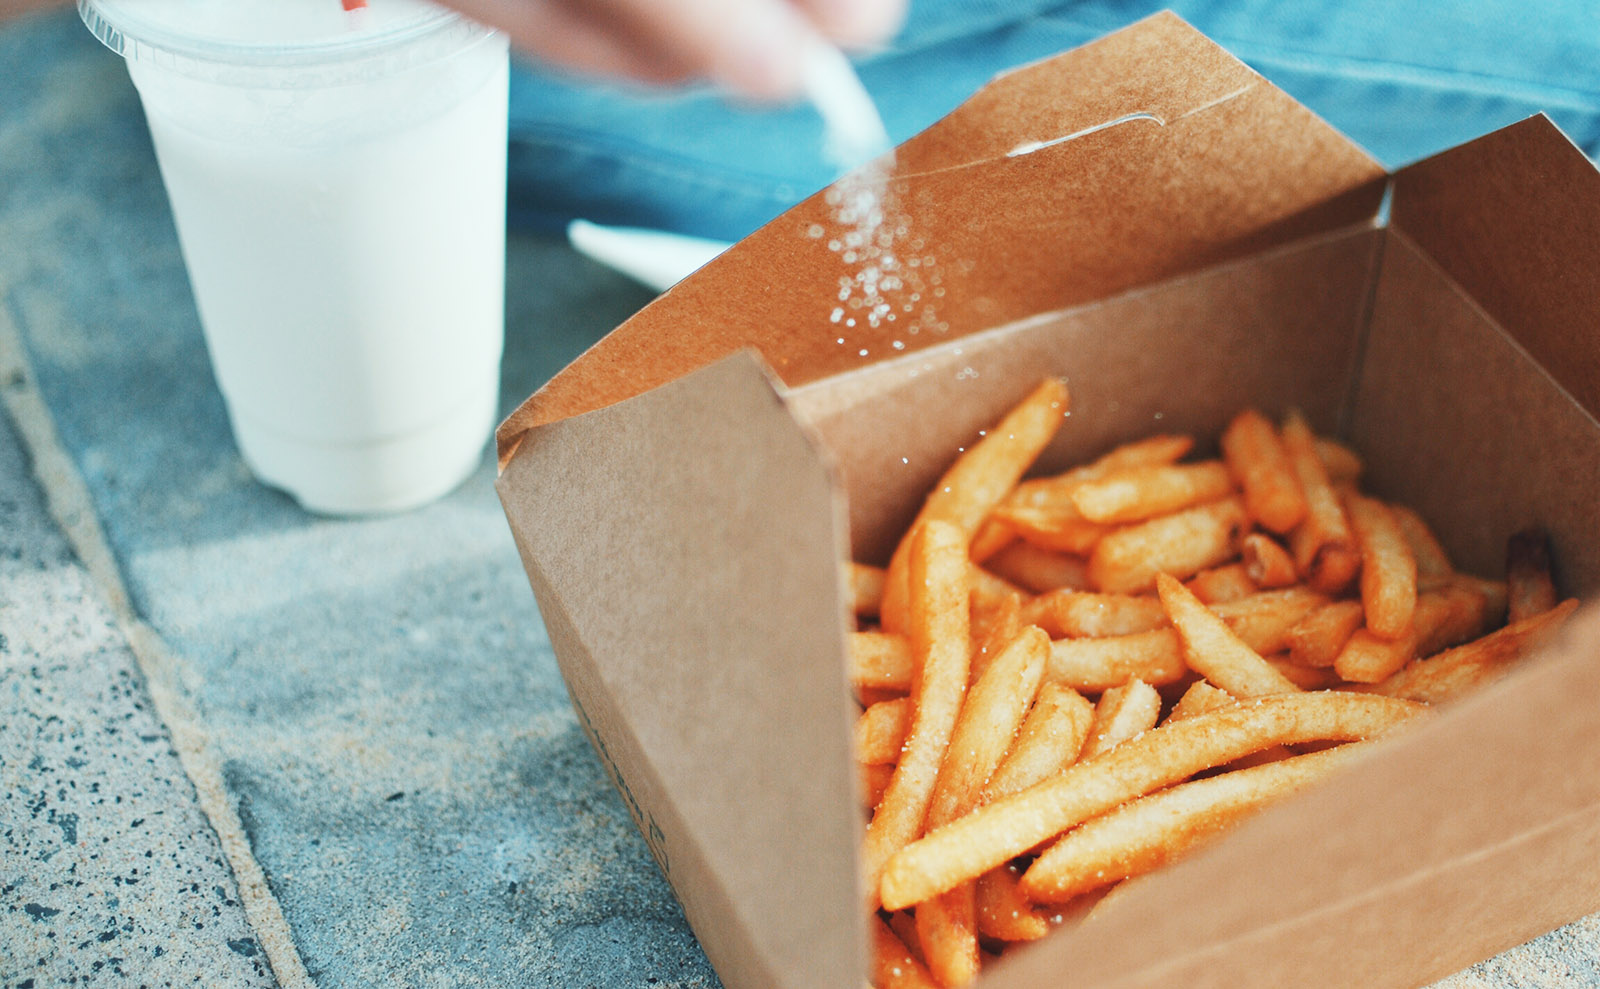 basket of french fries being sprinkled with salt